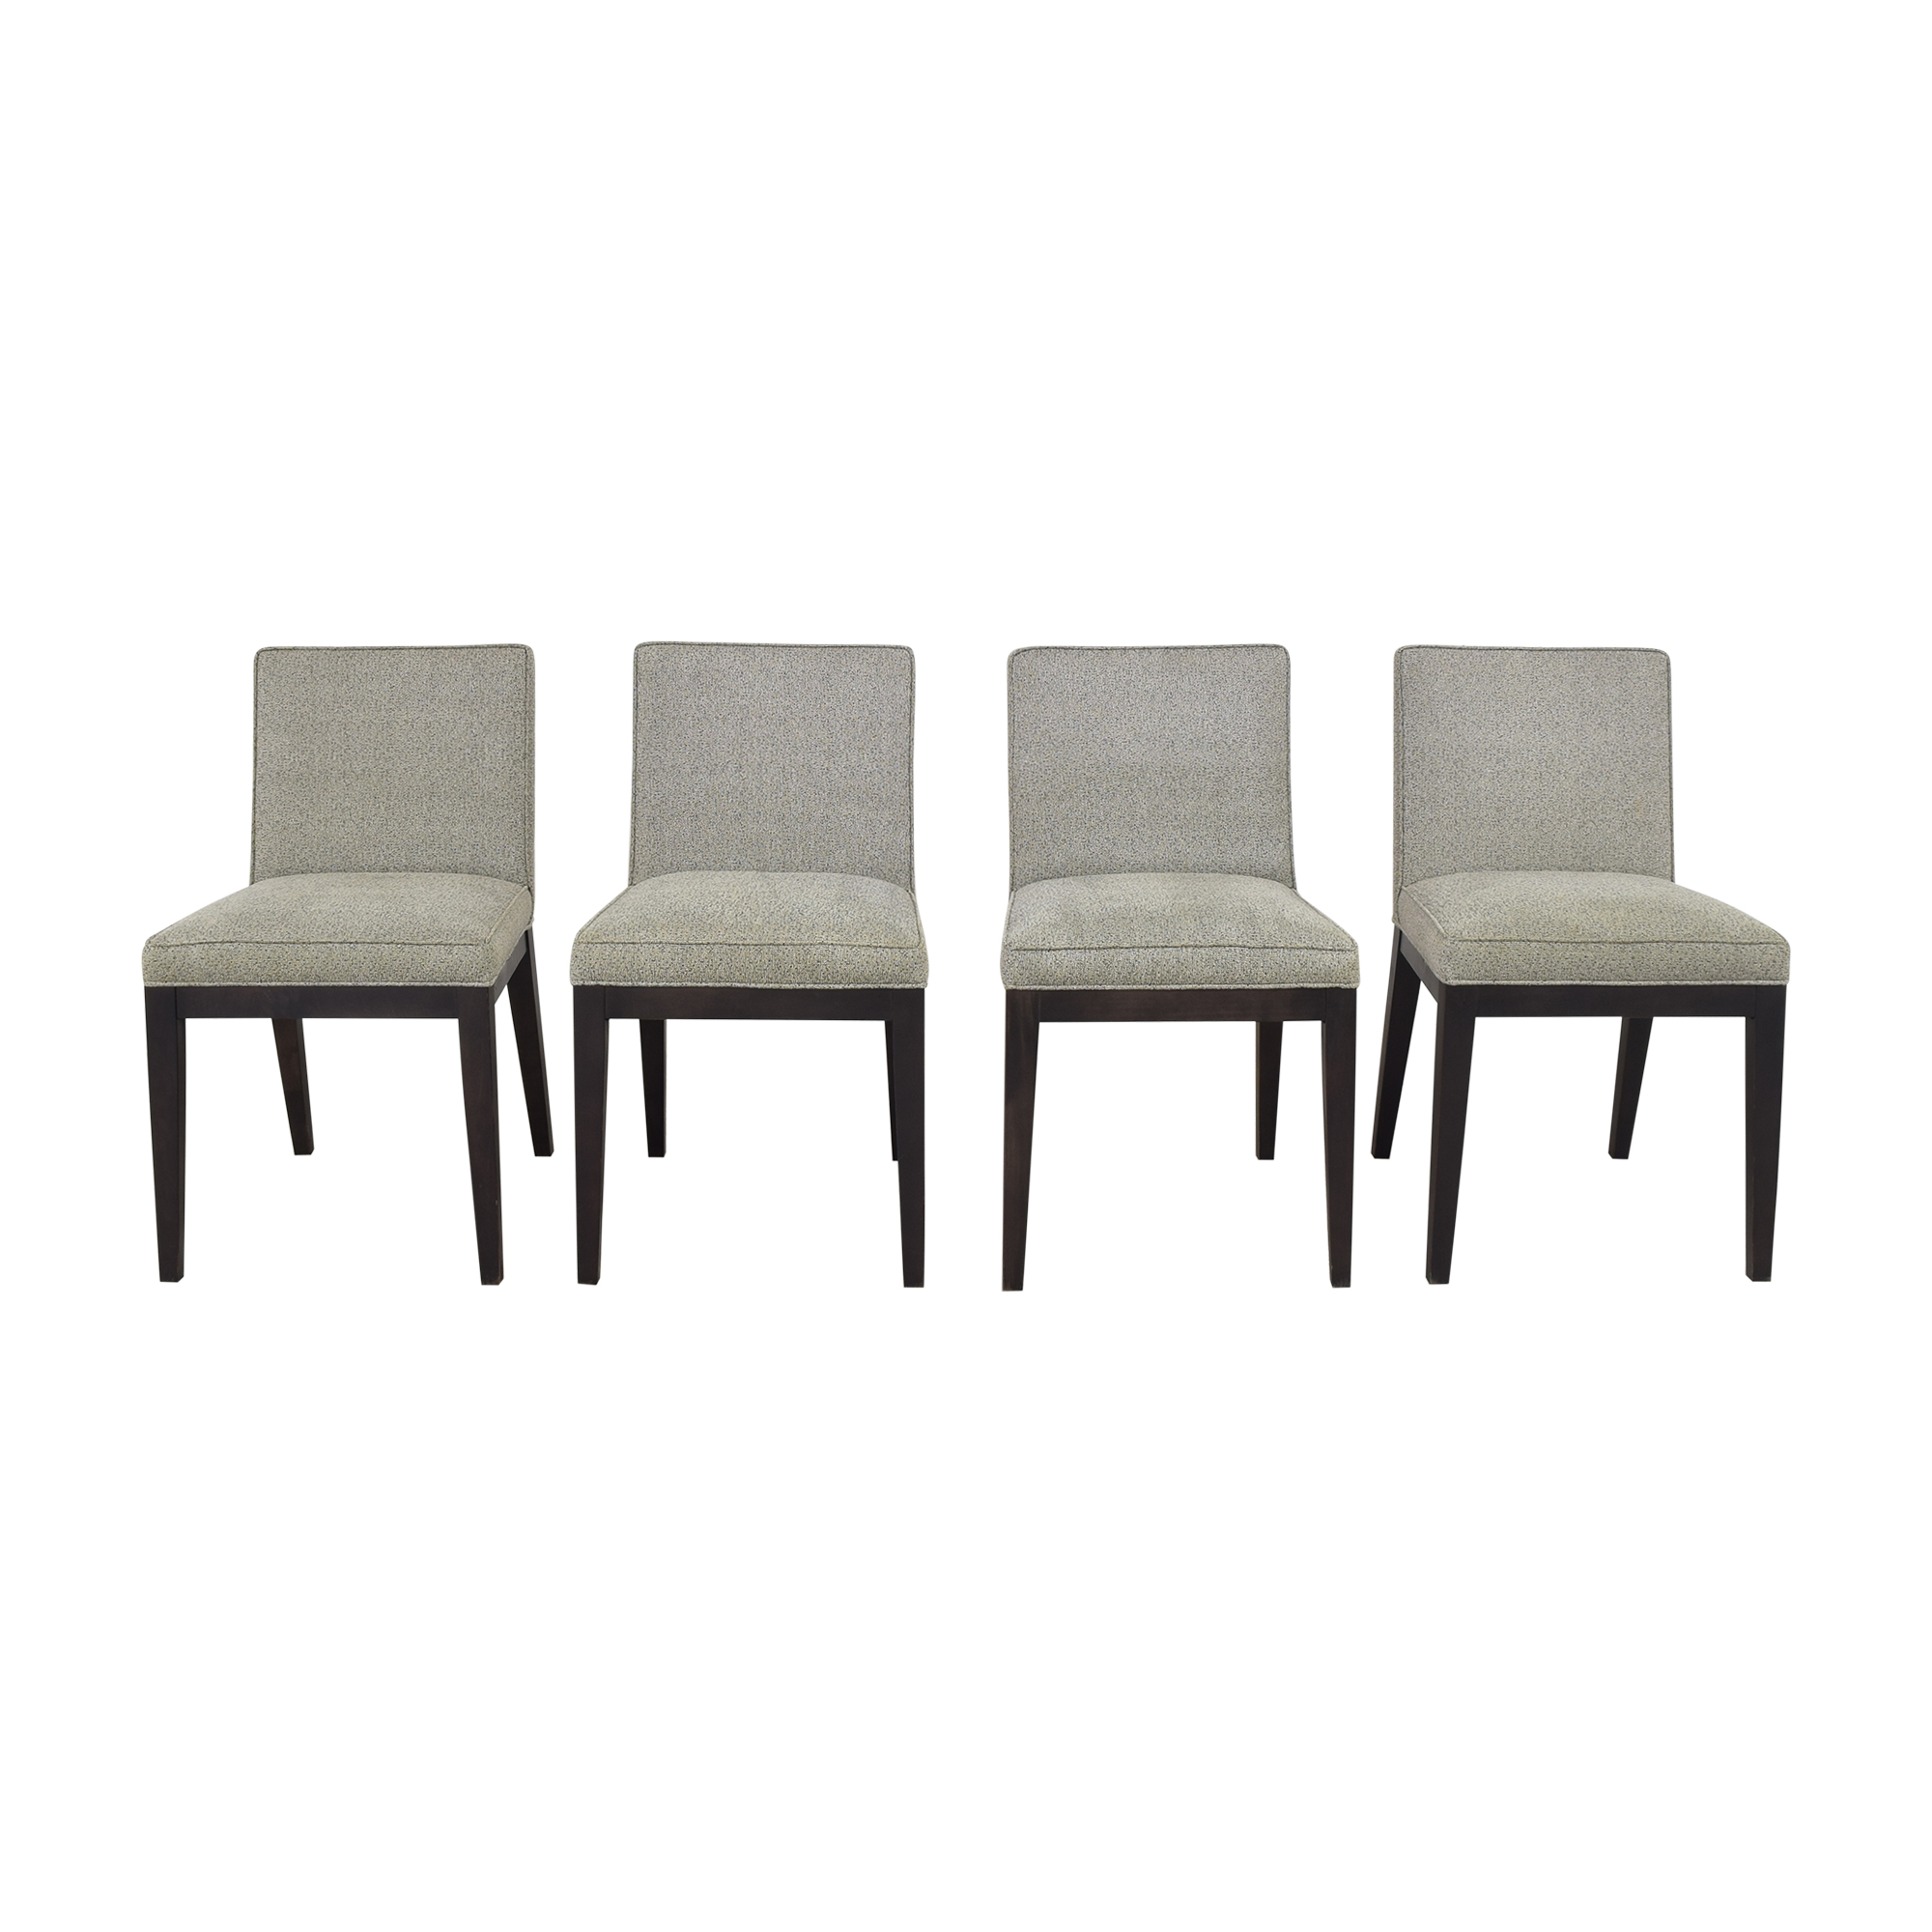 Room & Board Ansel Dining Side Chairs / Chairs